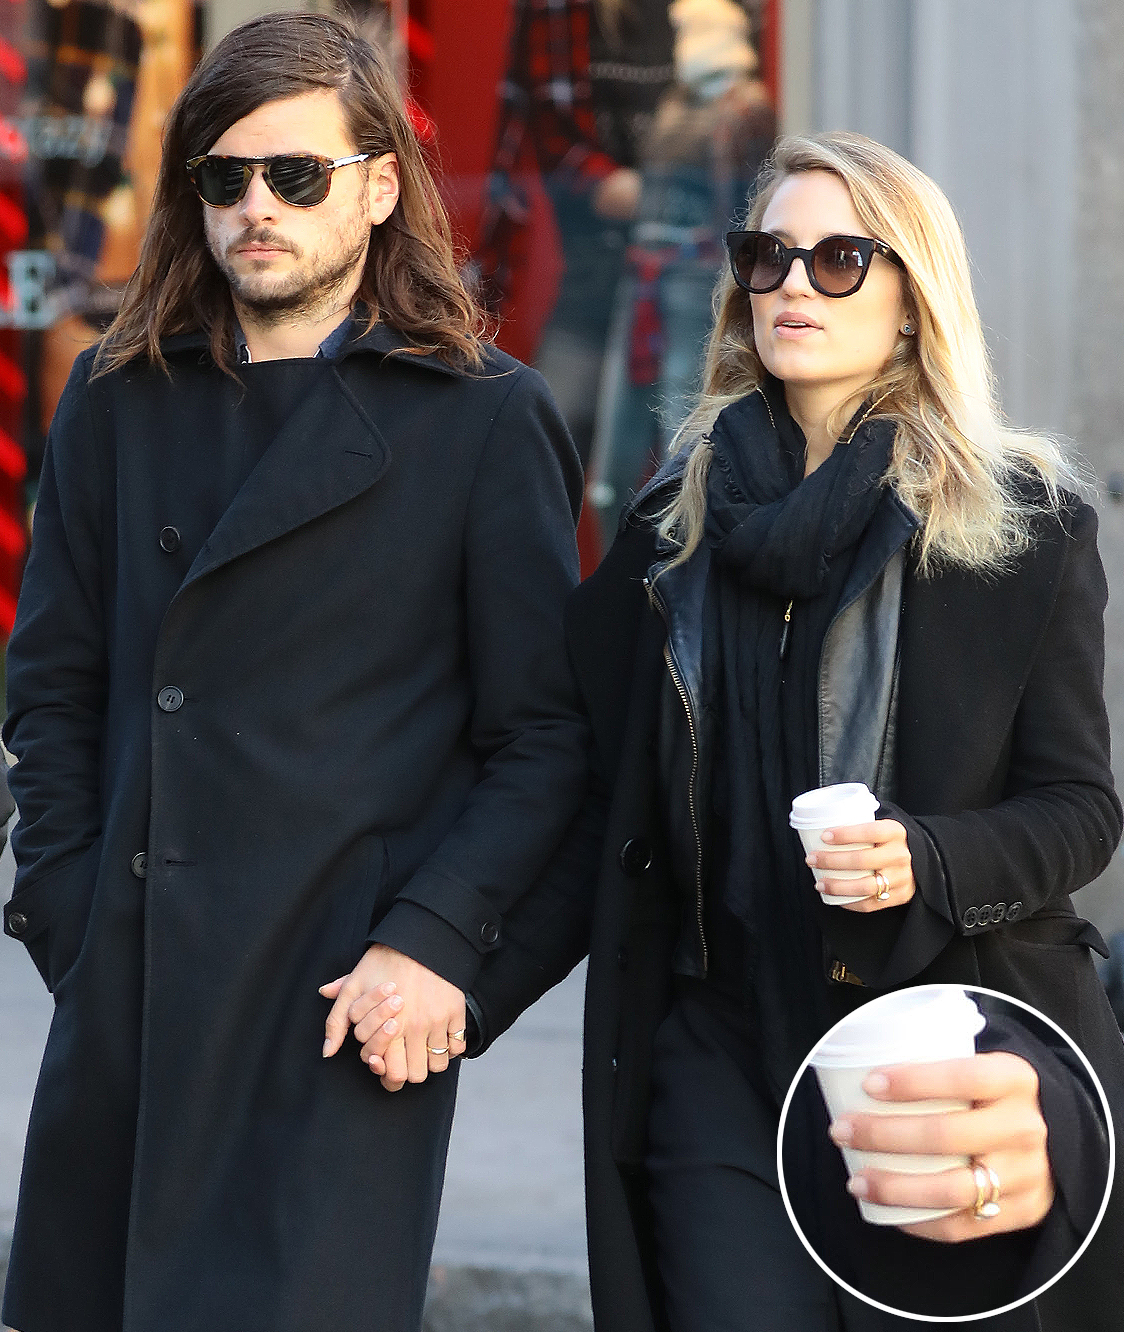 EXCLUSIVE: New married Dianna Agron and Winston Marshall hold hands as they are seen in New York